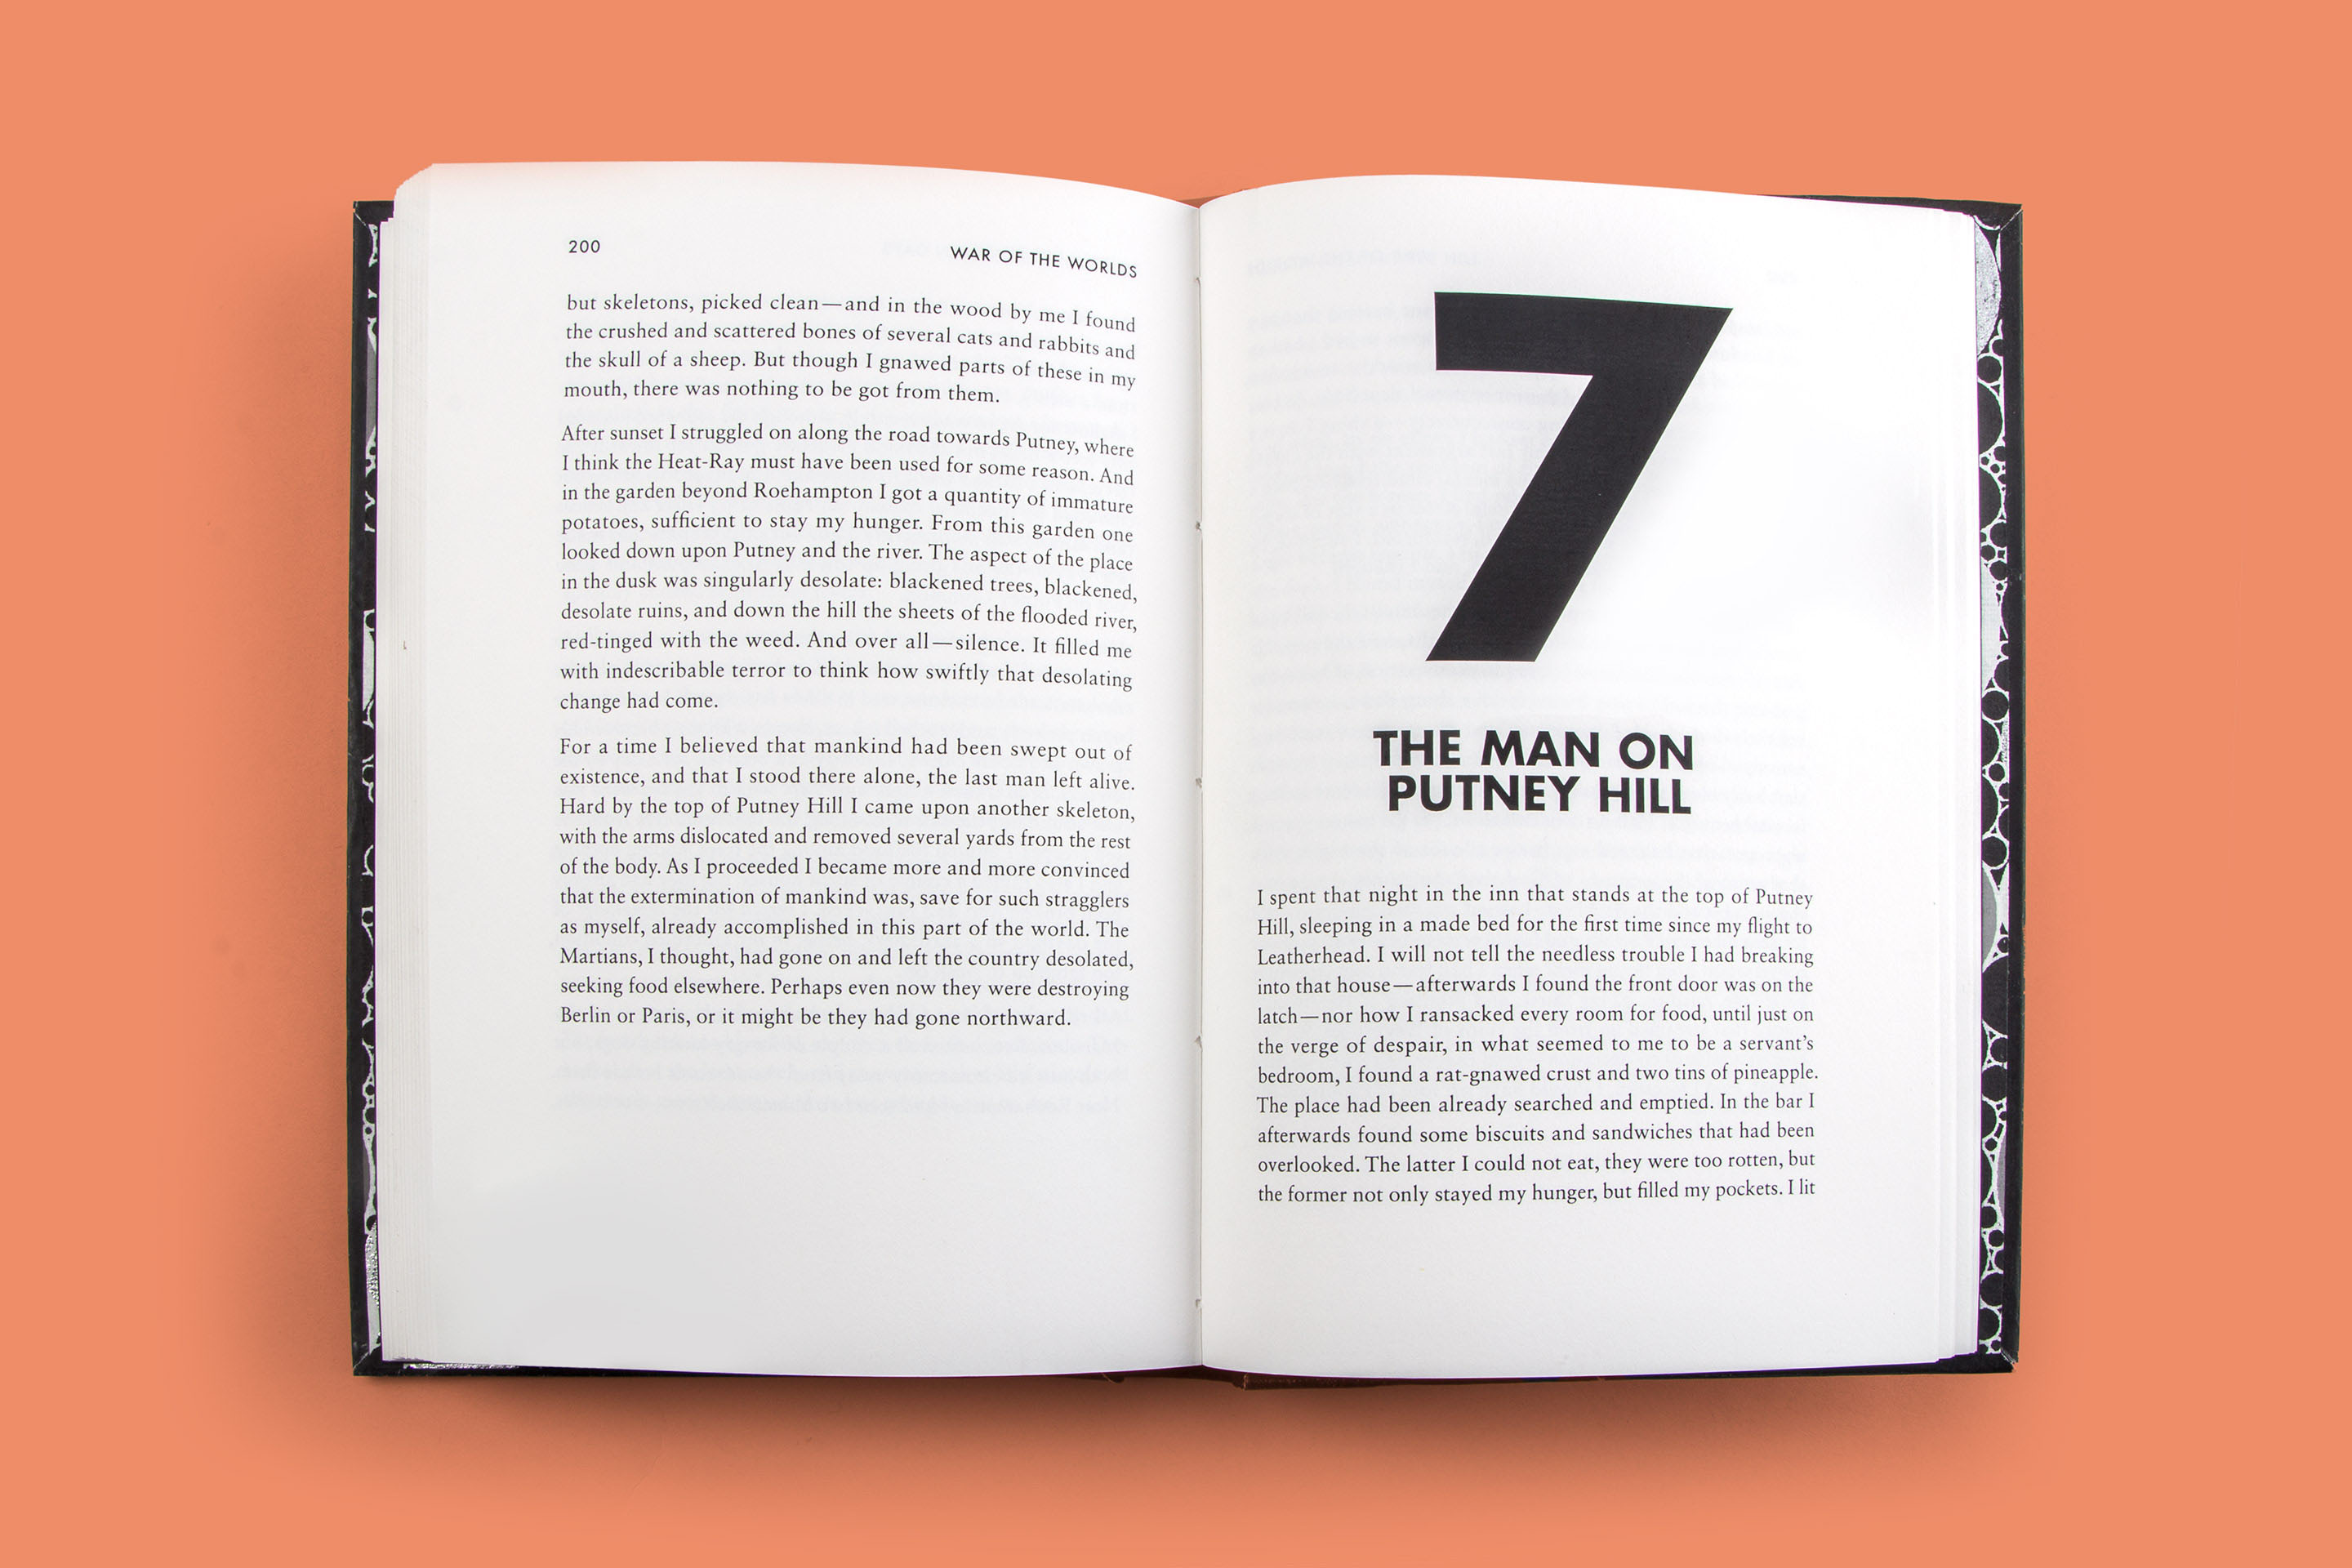 a spread from book, showing chapter 7